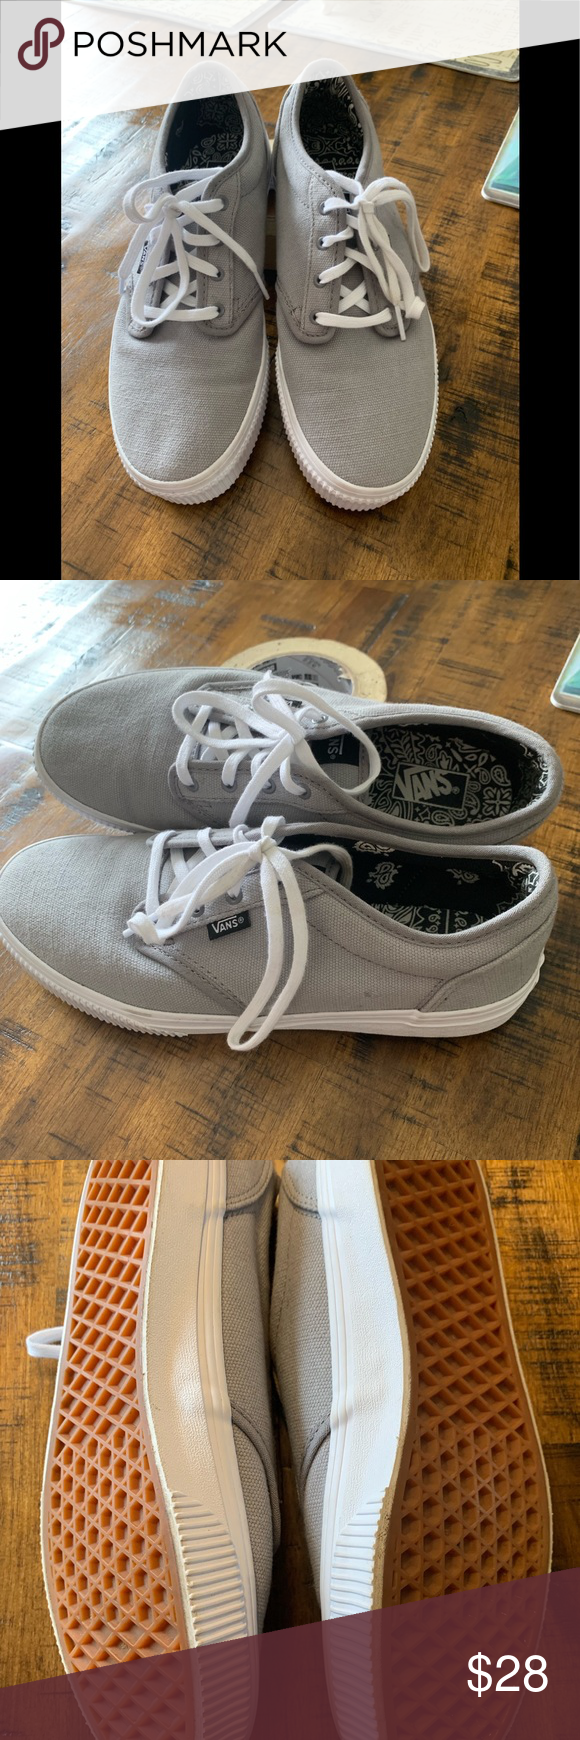 youth size 7 vans